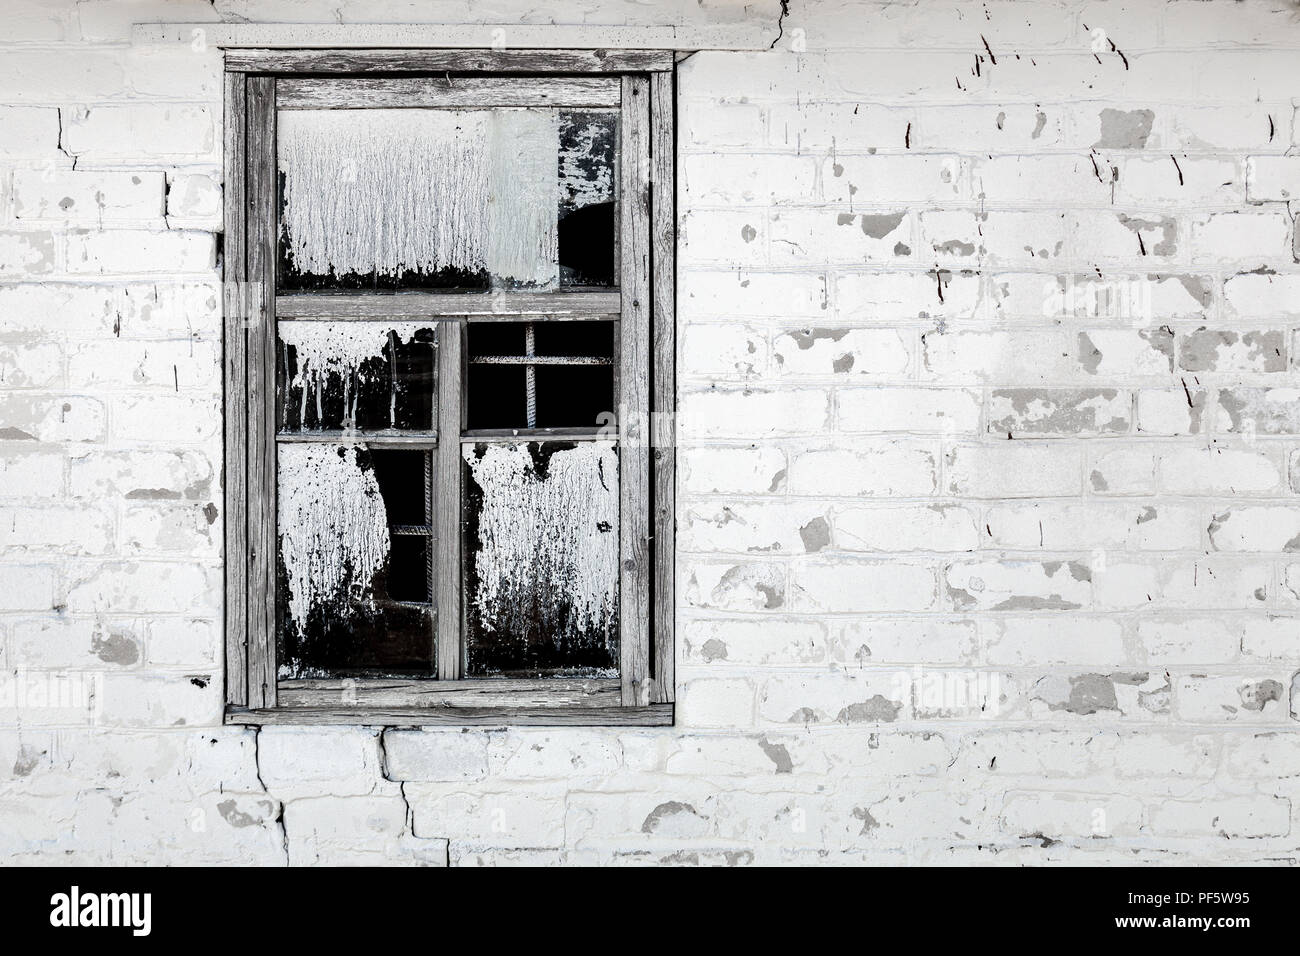 Old aged cracked white brick wall with broken window. Shattered dirty window glass and iron grates with black background. Abandoned building concept - Stock Image